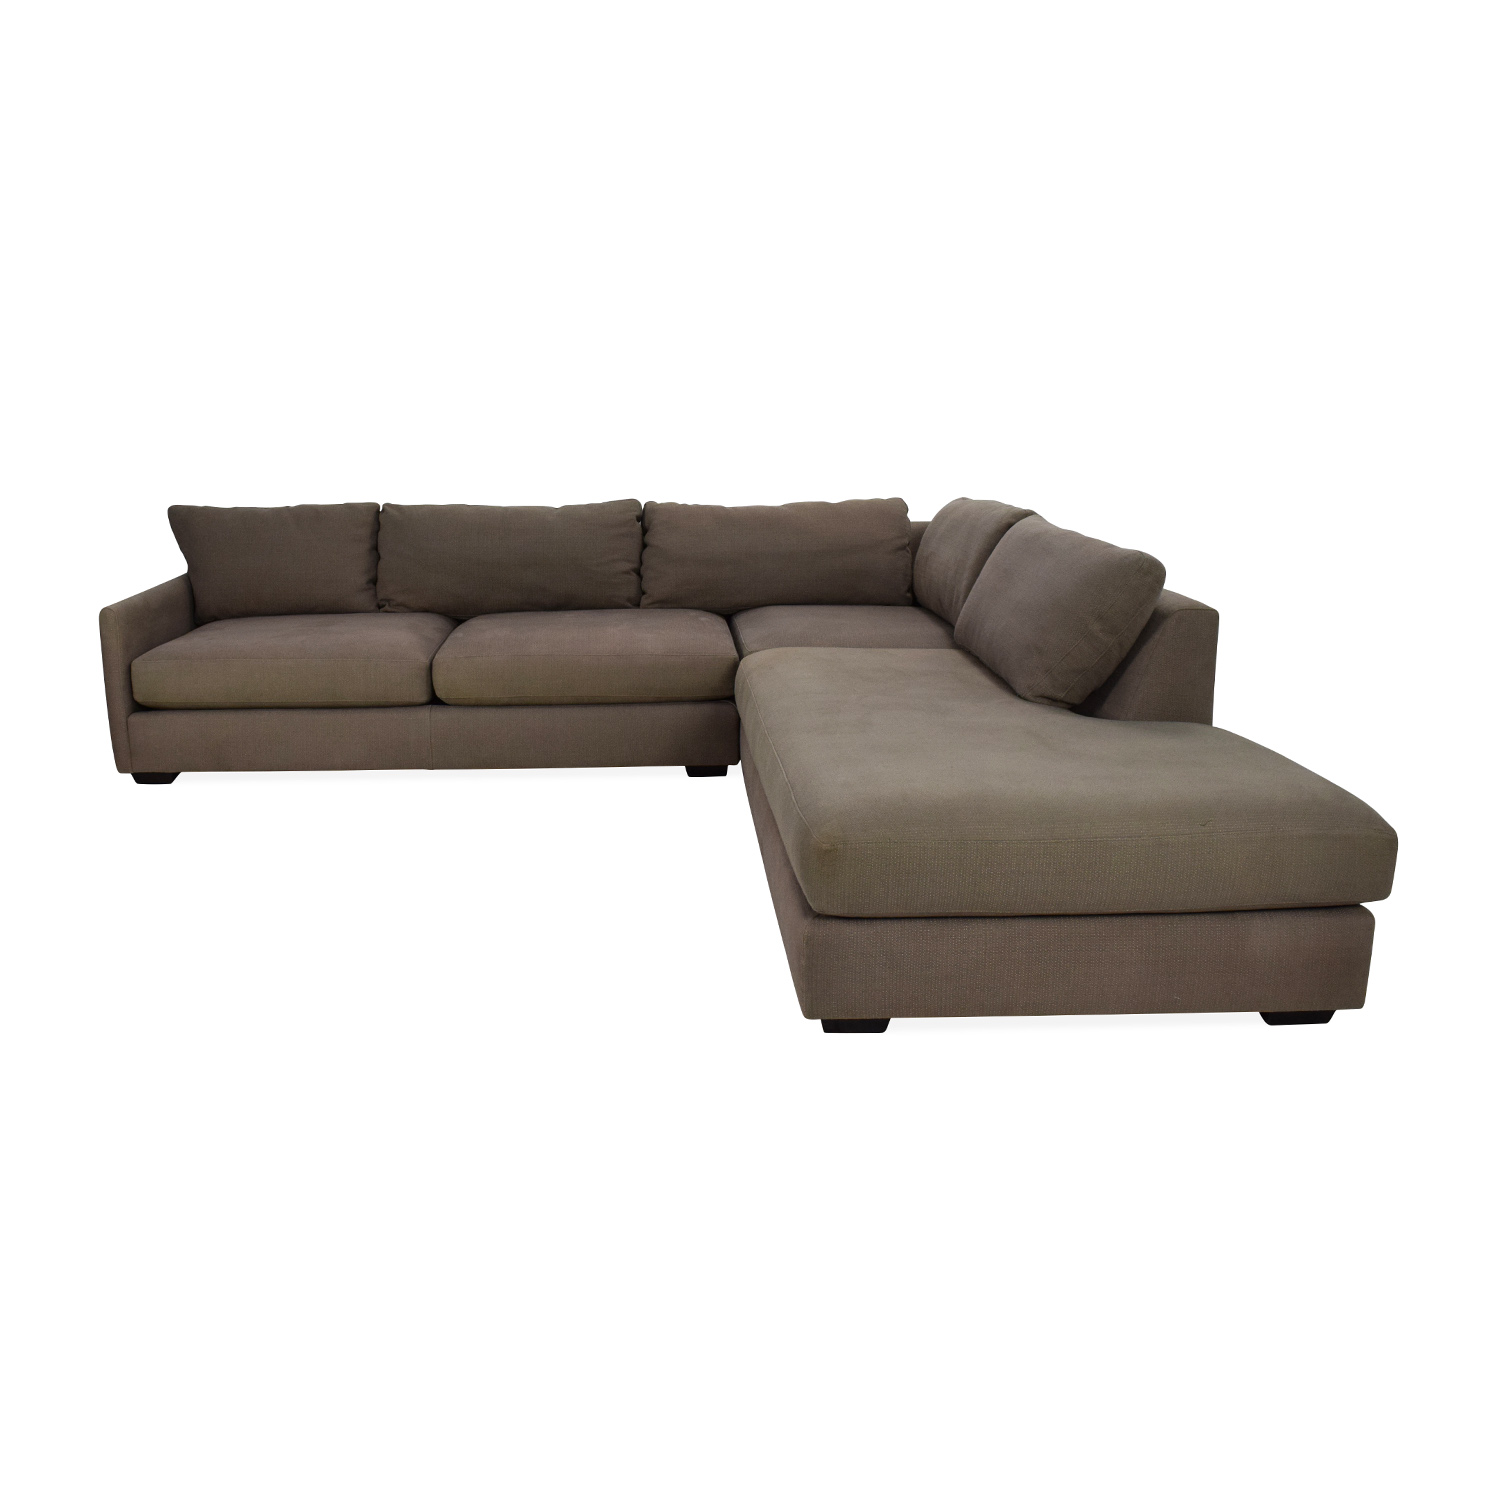 82 OFF Crate and Barrel Crate Barrel Domino Sectional Sofa Sofas